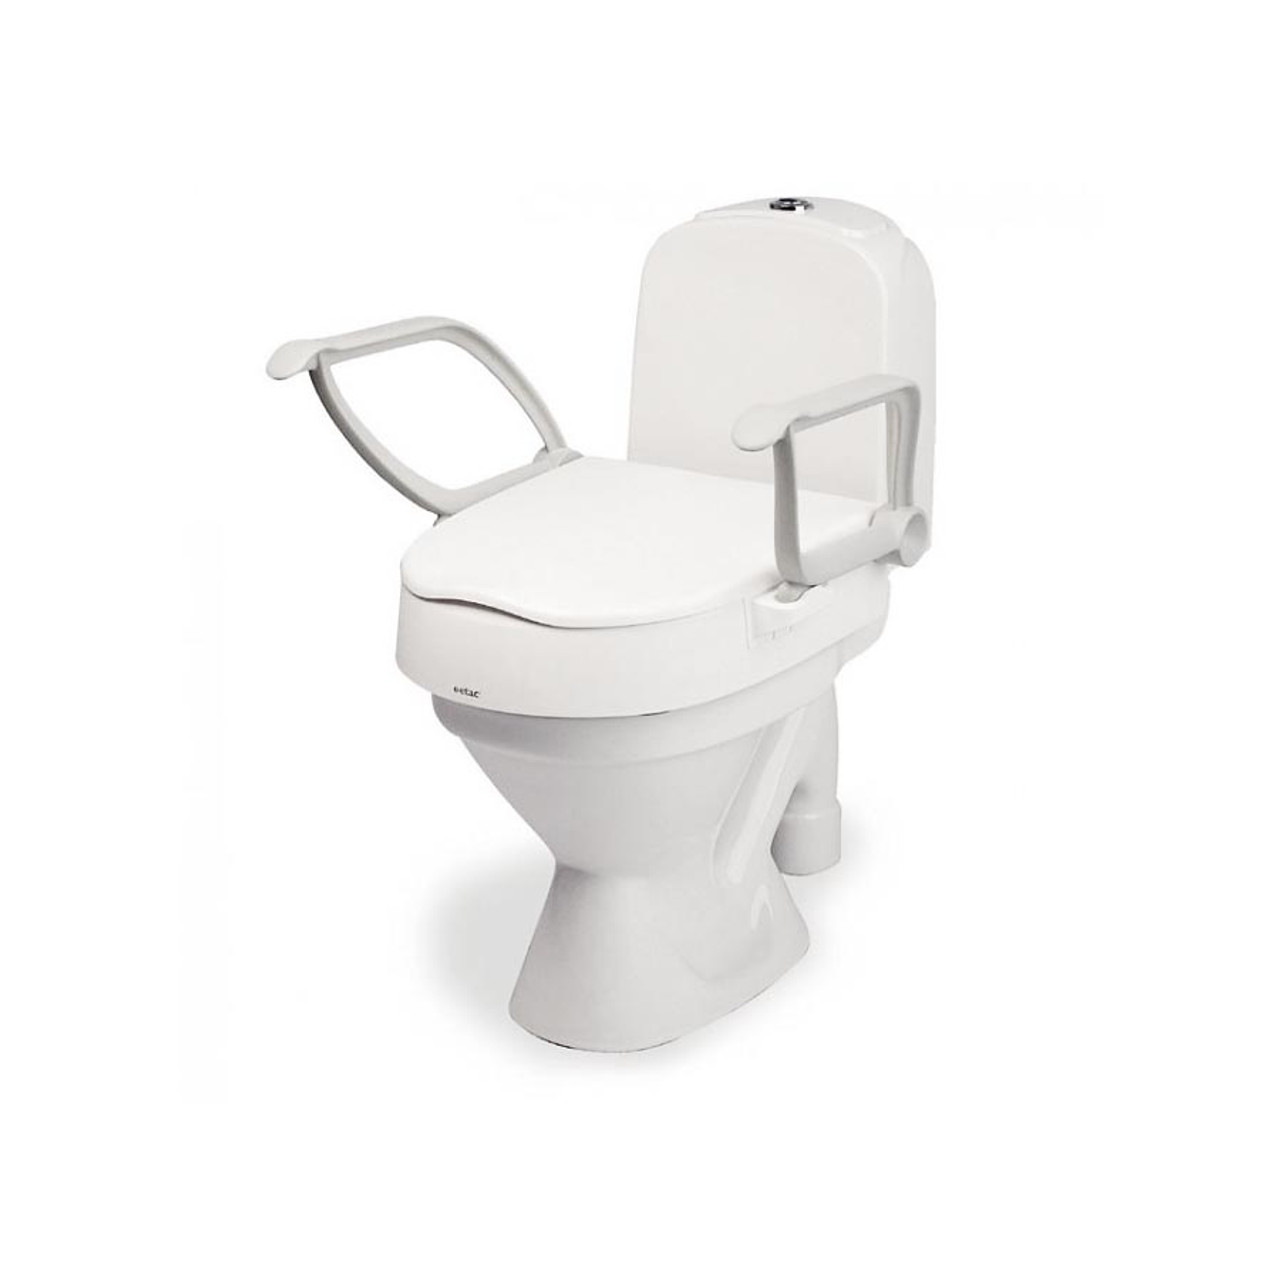 Toilet Seat Riser With Arms.Cloo Adjustable Toilet Seat Riser With Armrests By Etac